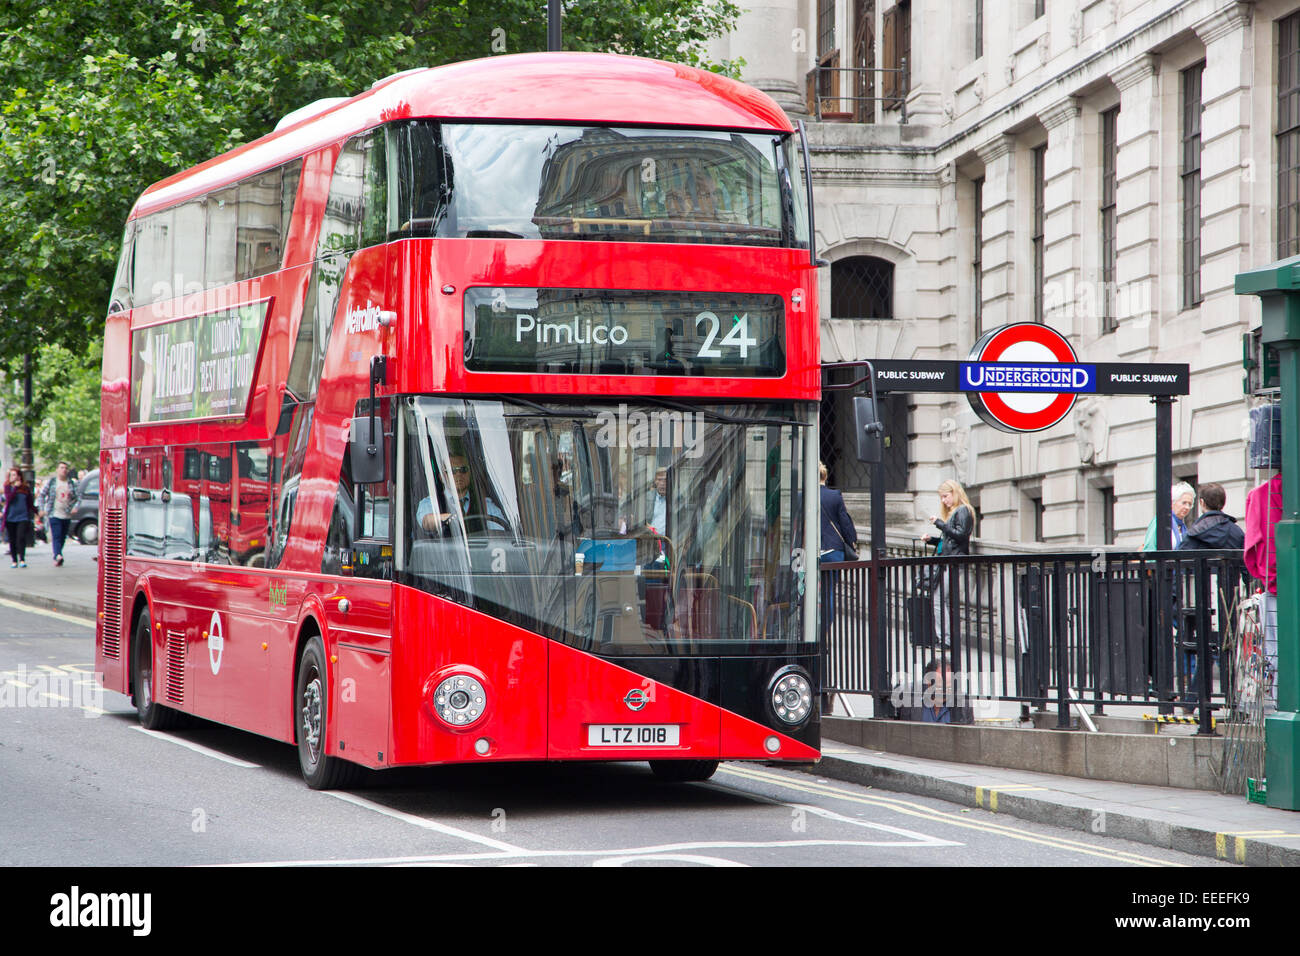 new bus for london on route 24 stock photo 77766285 alamy. Black Bedroom Furniture Sets. Home Design Ideas